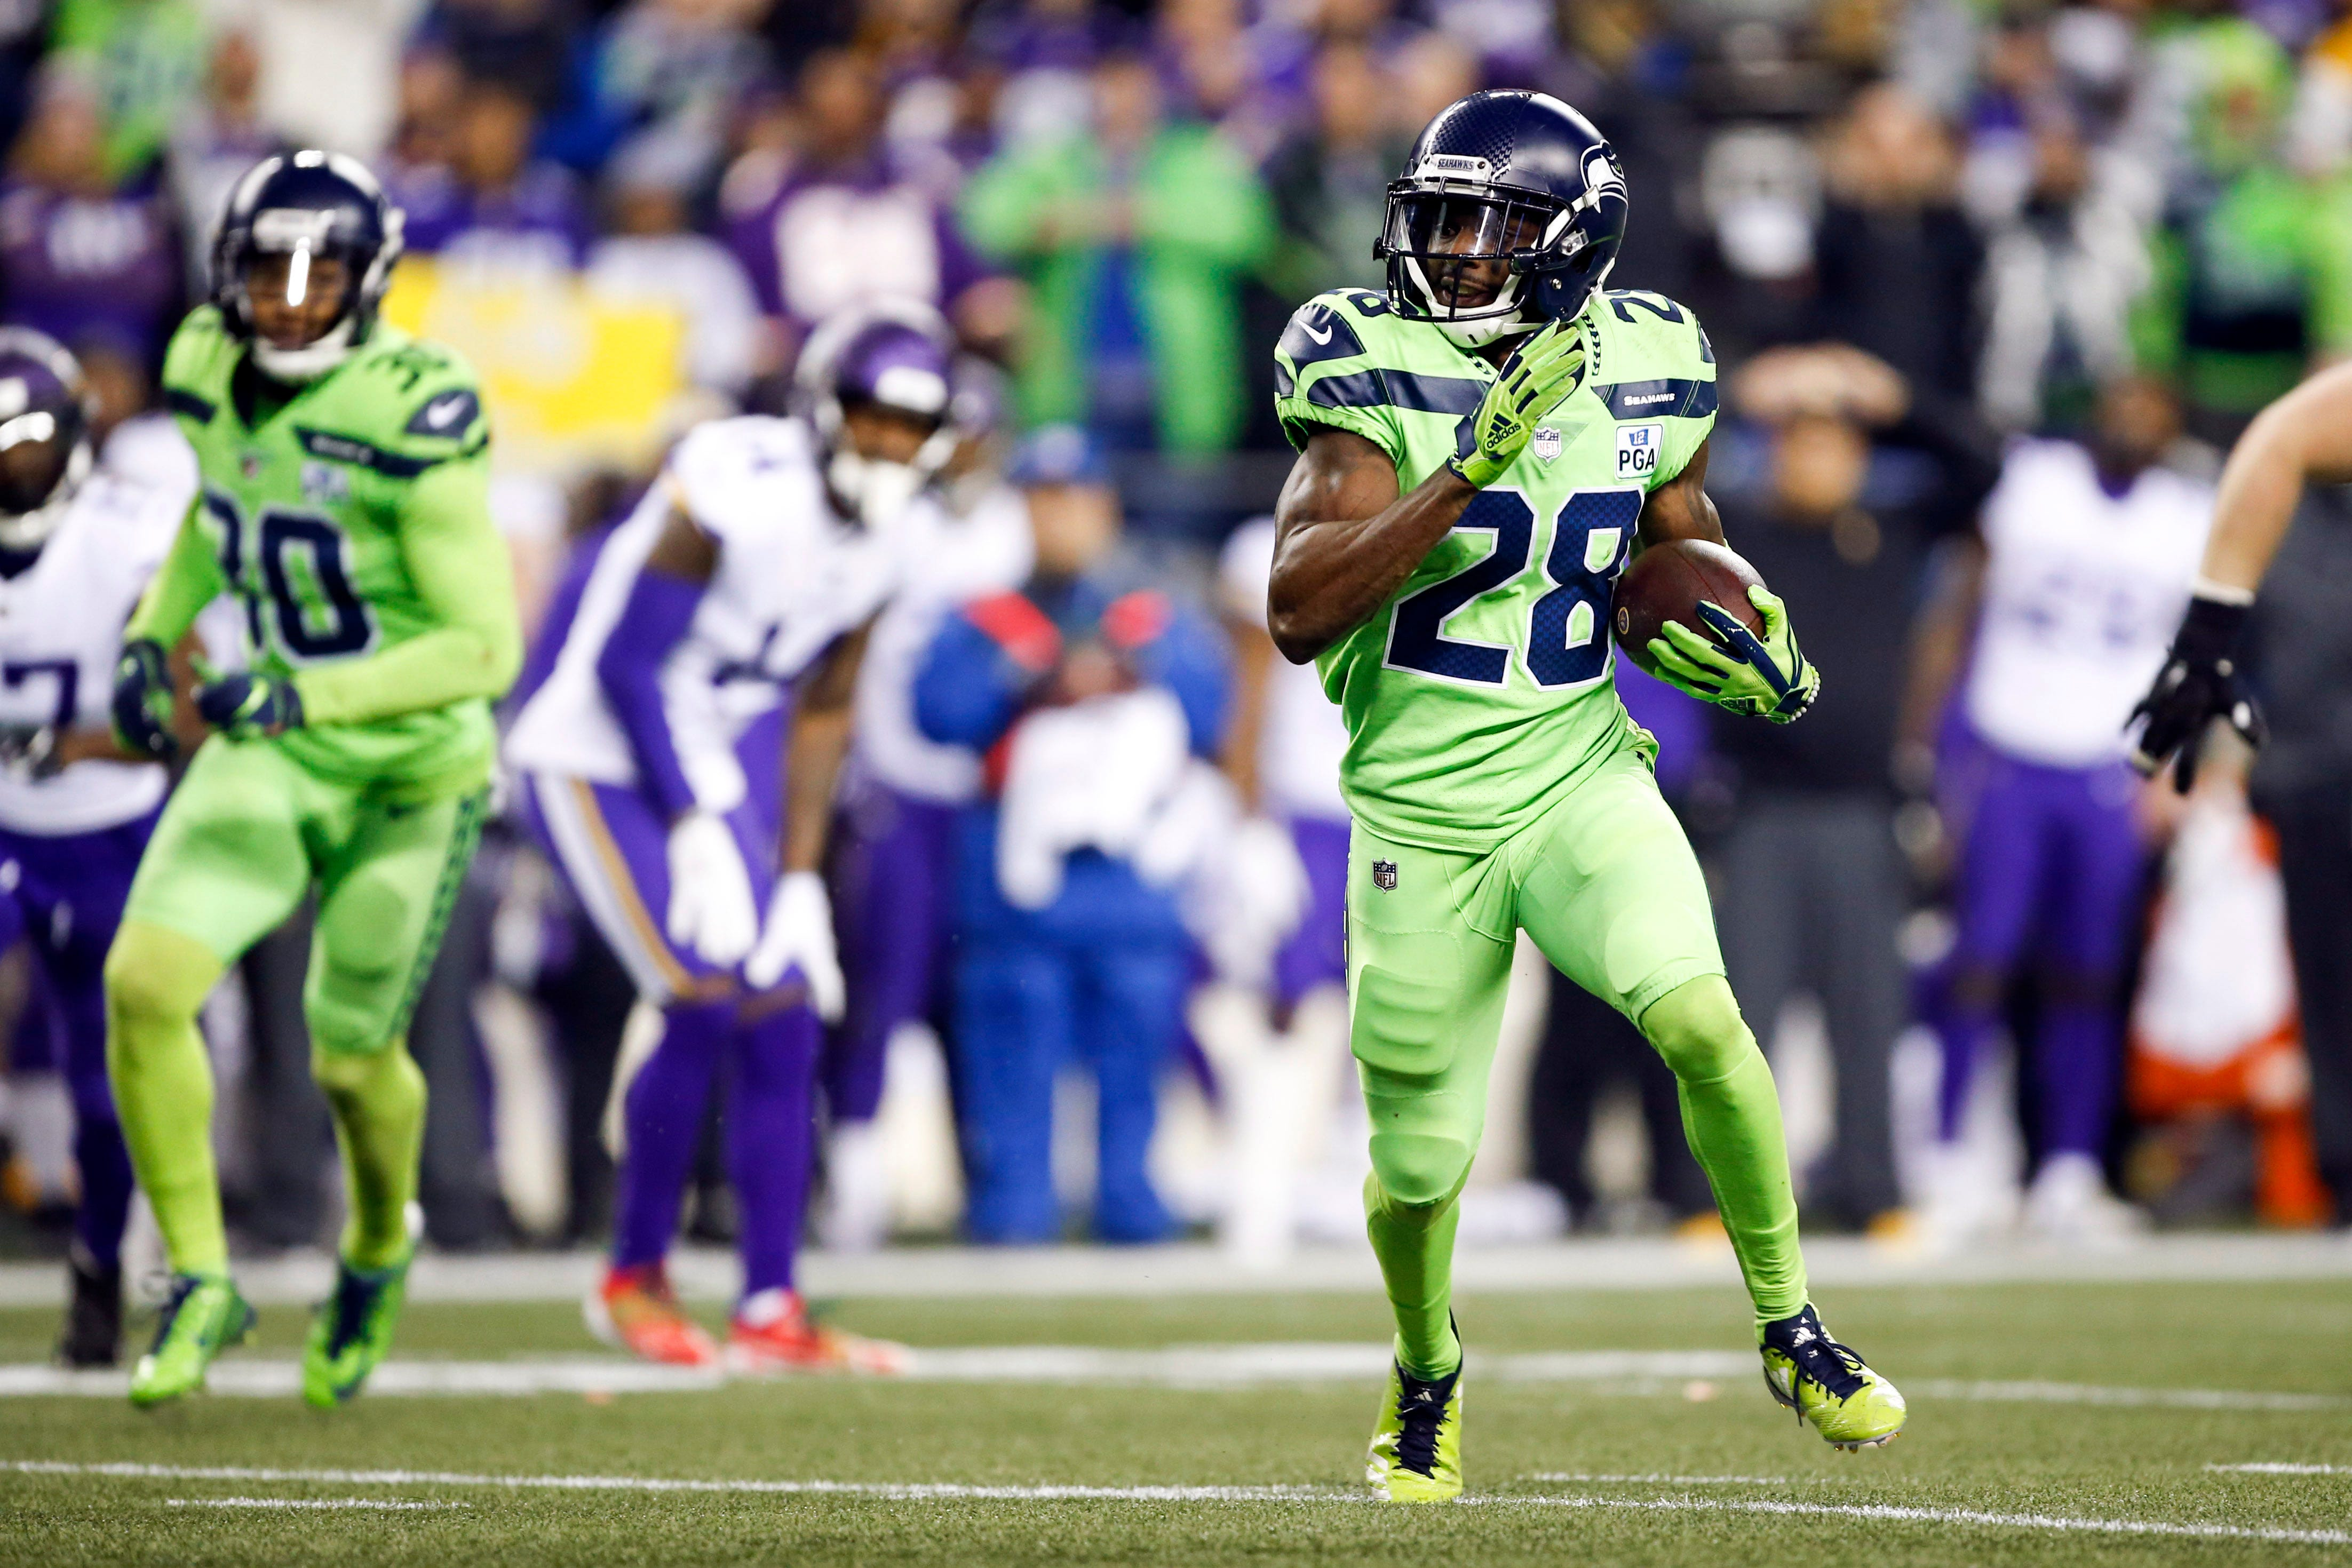 Seahawks defender trolls Kirk Cousins after fumble return for touchdown: 'You like that!!!'